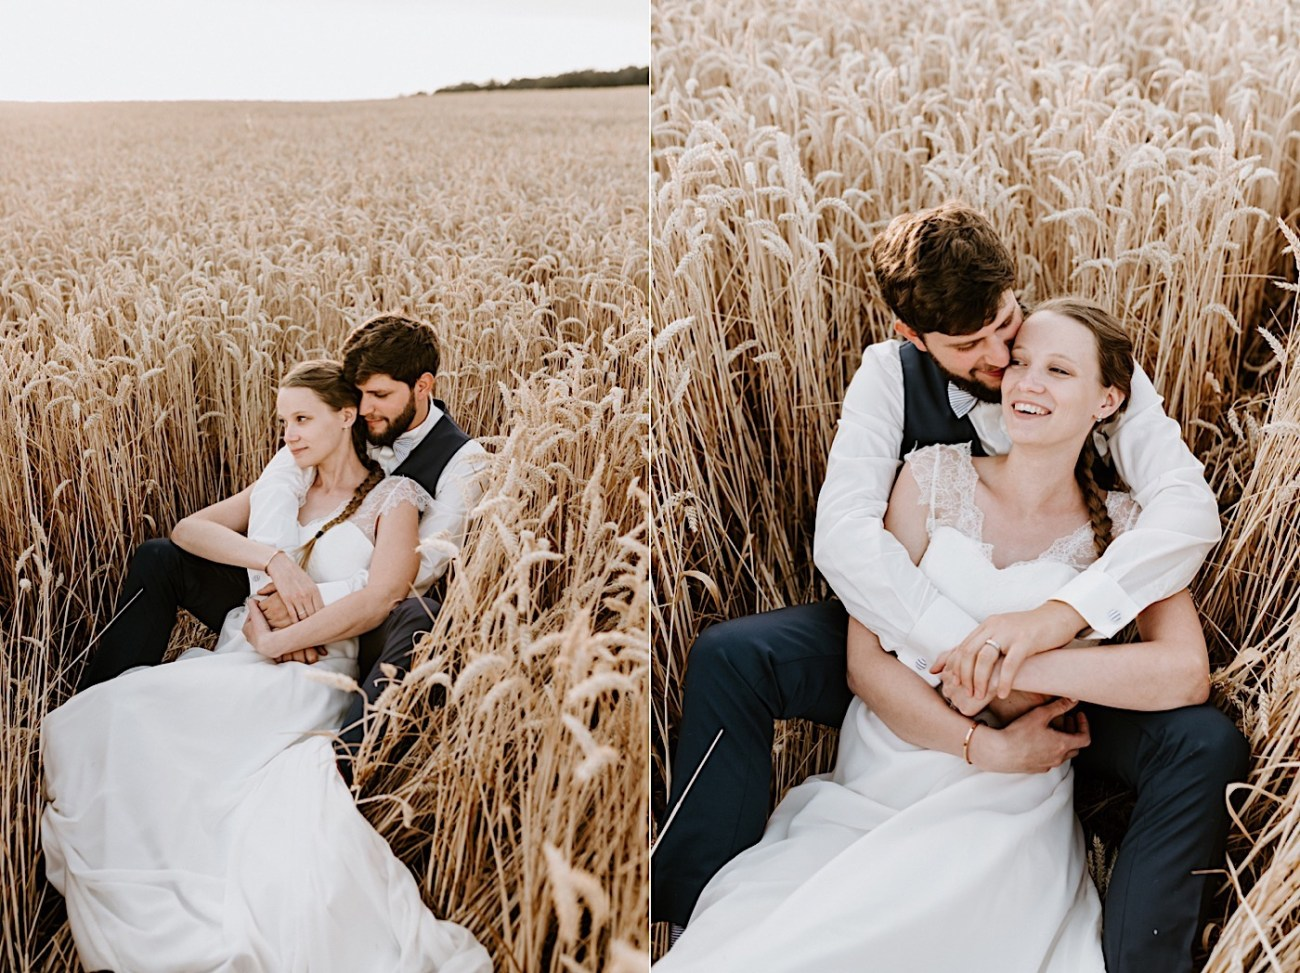 France Wedding Wheat Field Wedding Photos Paris Wedding Photographer 026